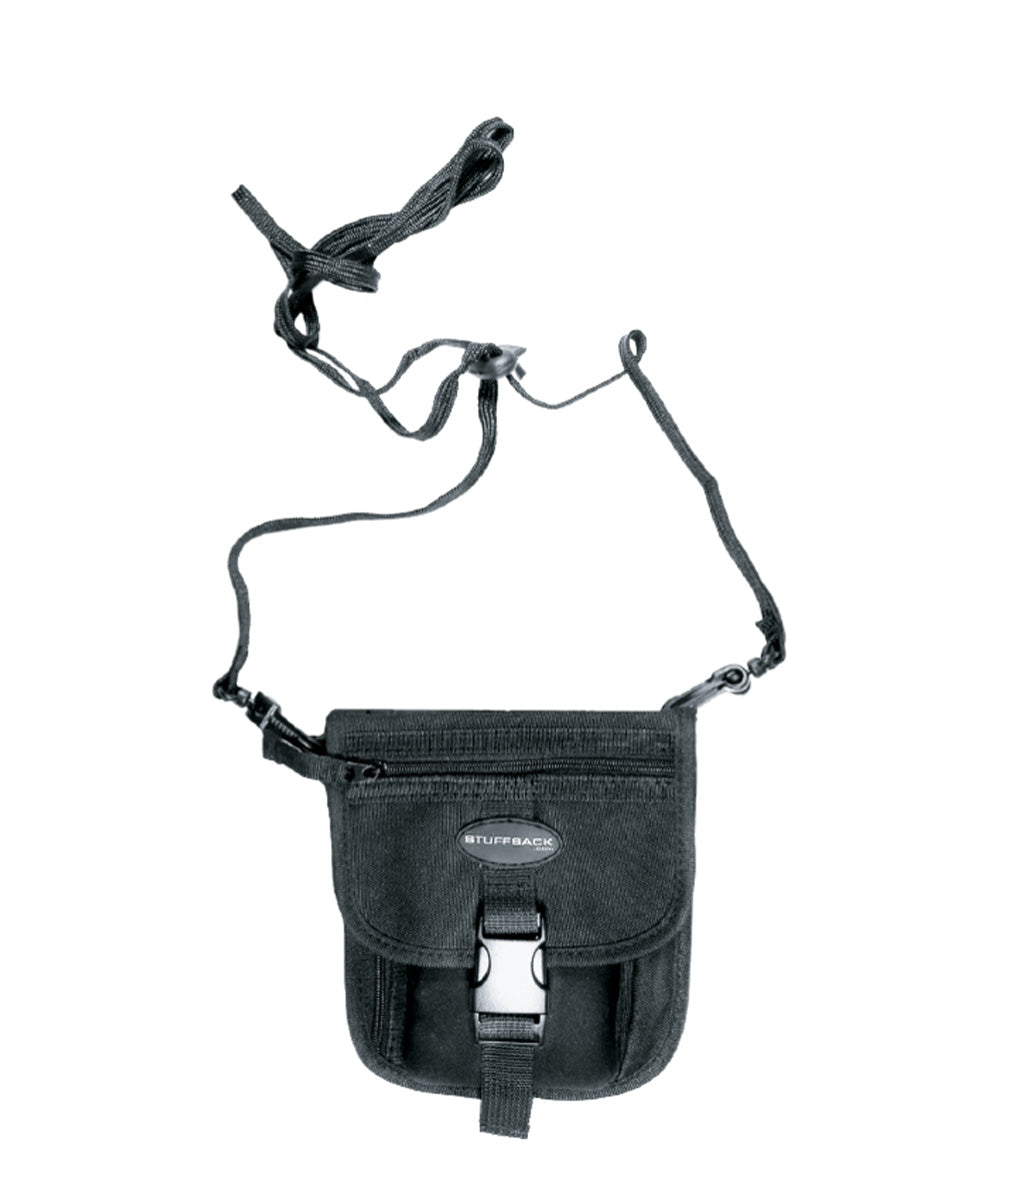 STUFFSACK.com Pro Travel Belt & Neck Bag